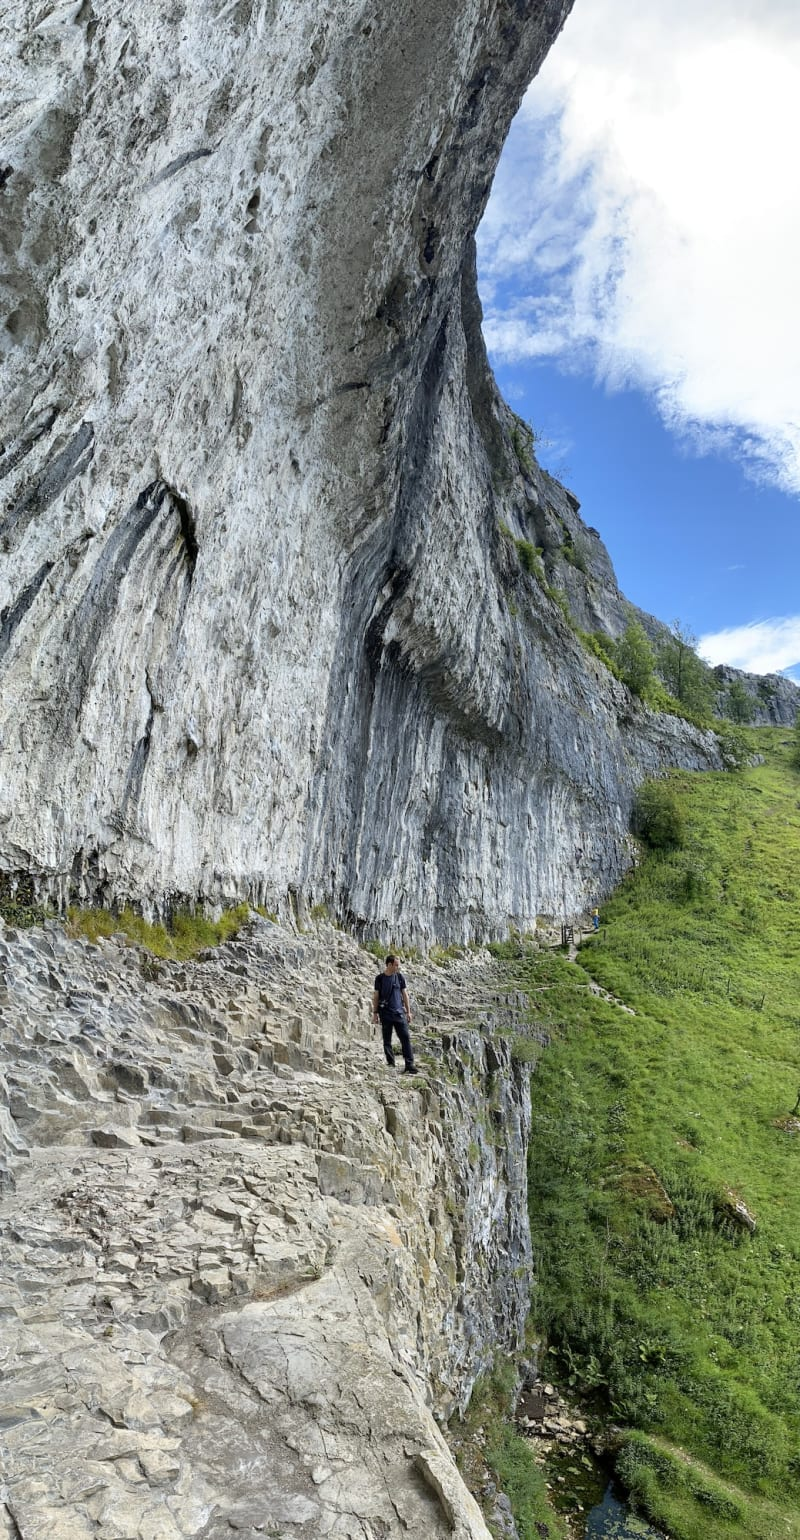 A vertical panorama from the side of Malham Cove. A large rock face looms over Chris.